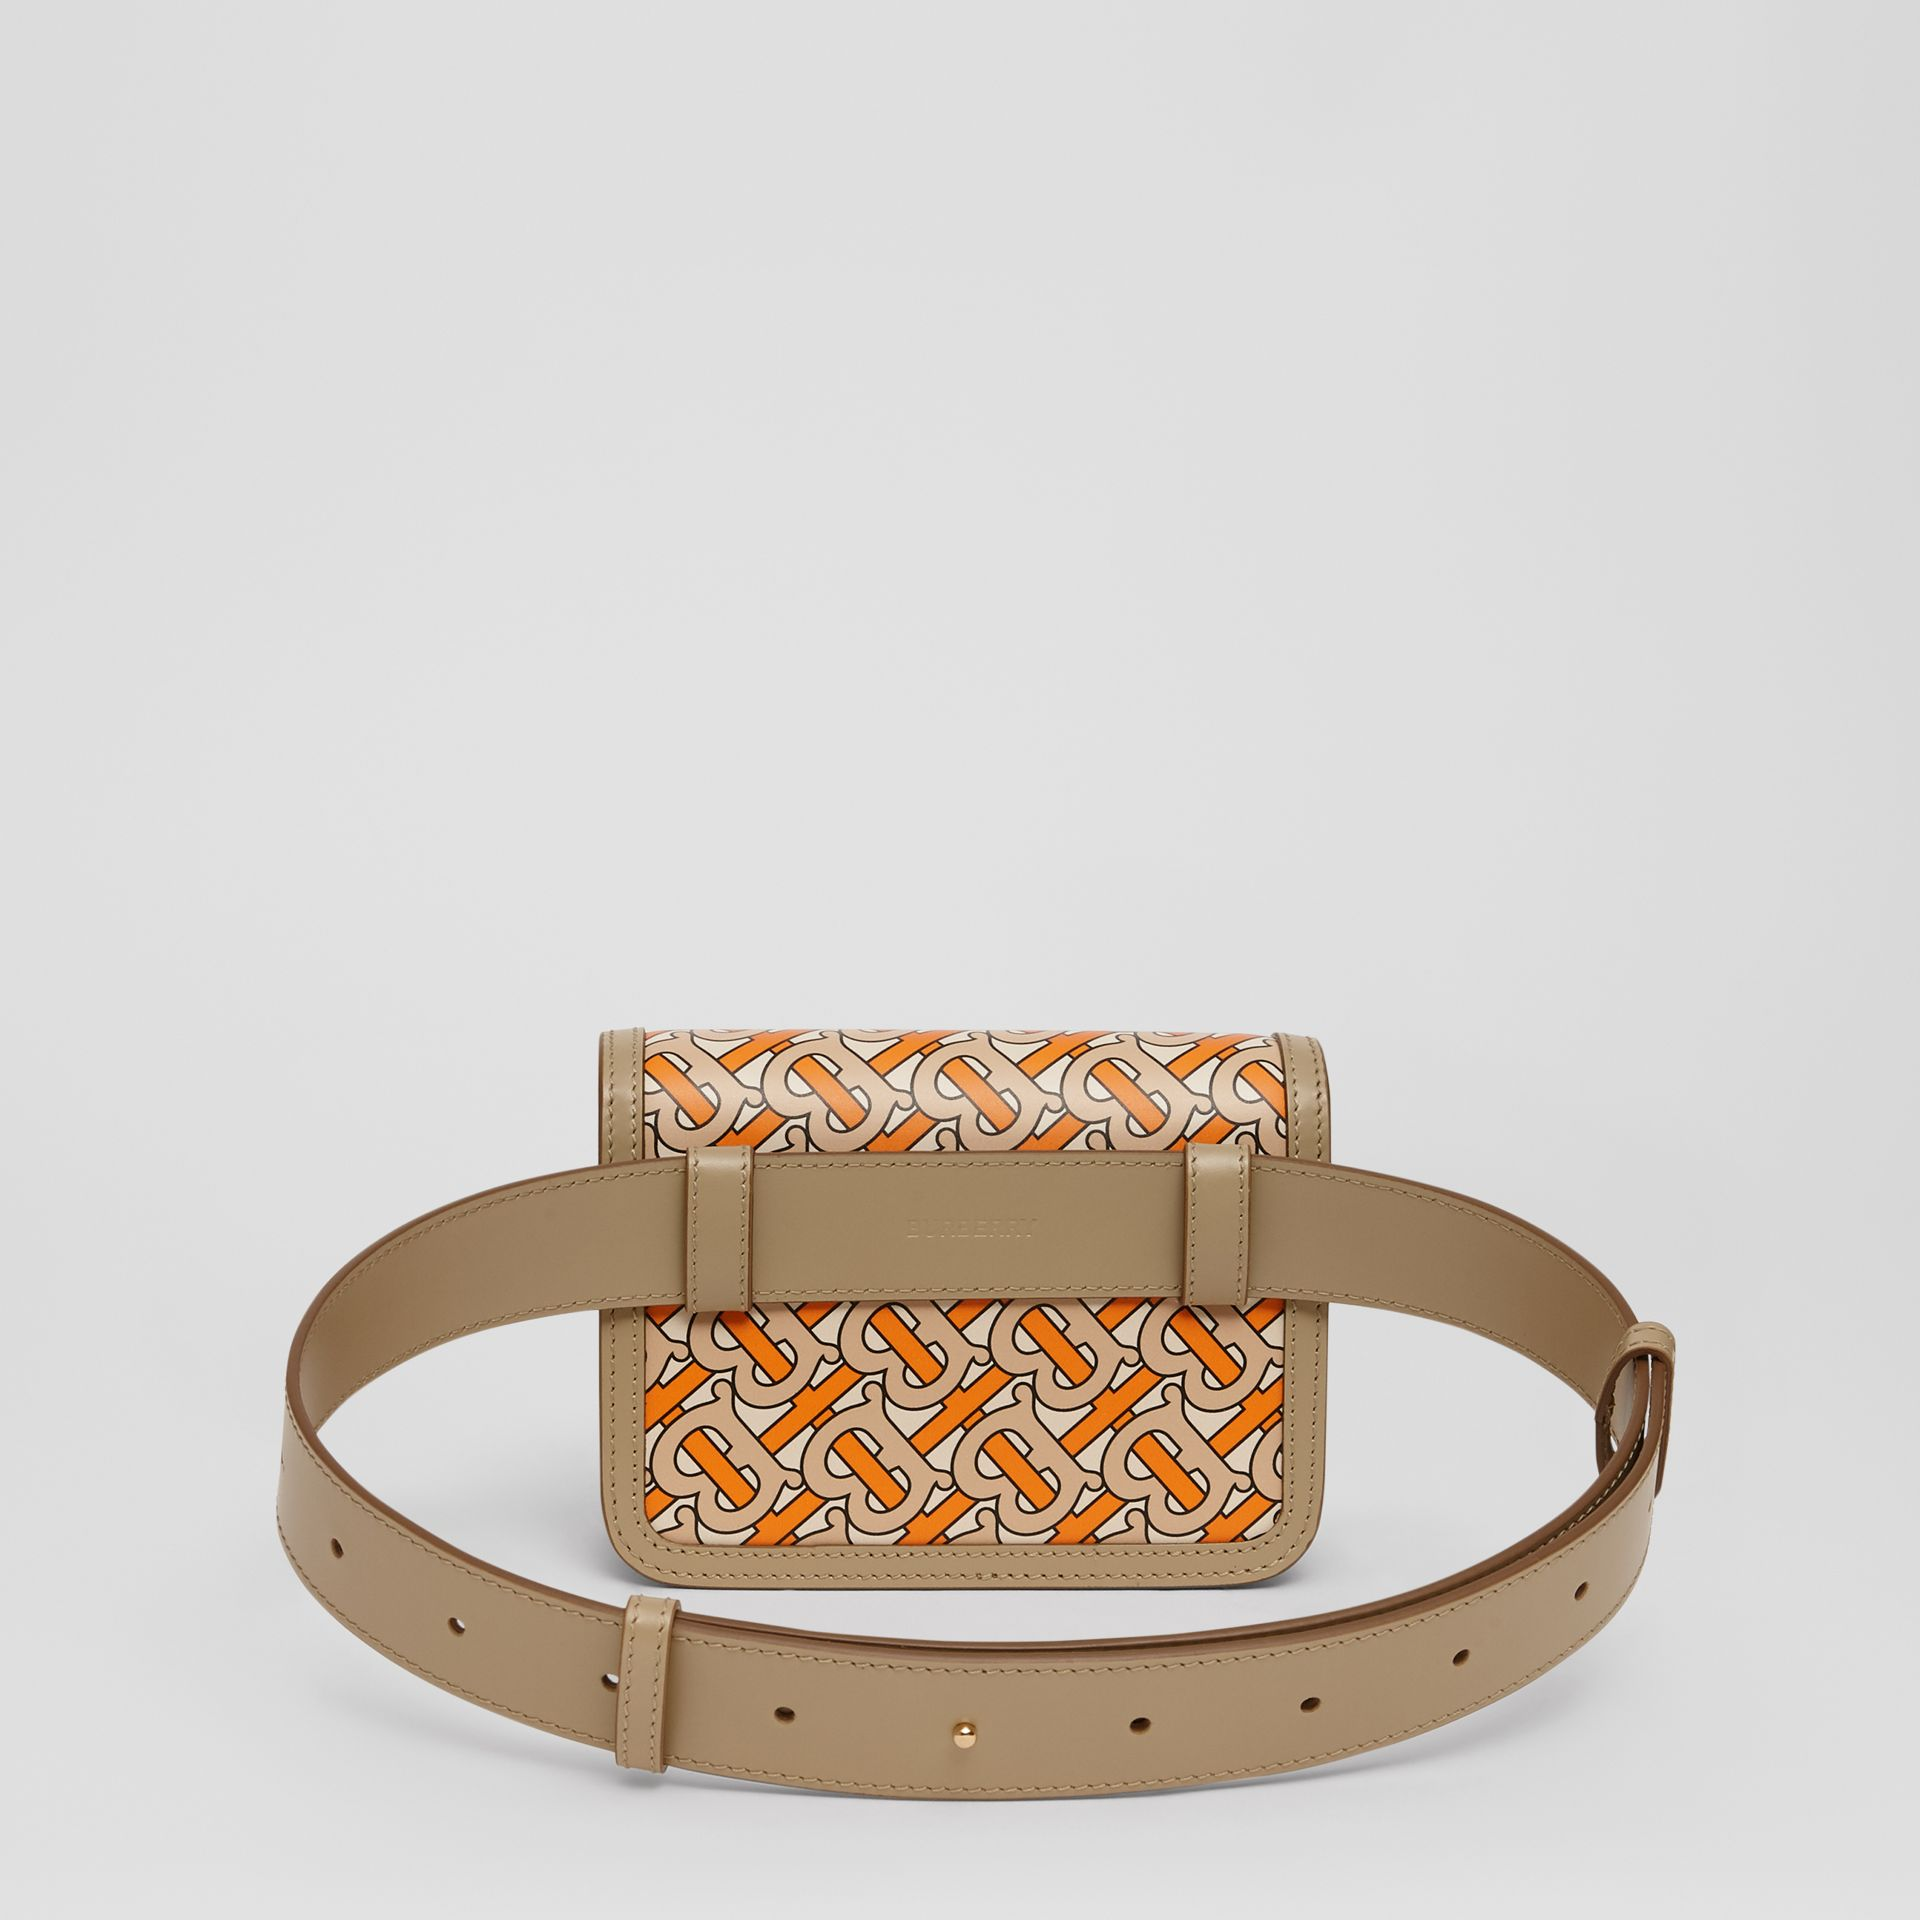 Belted Monogram Print Leather TB Bag in Bright Orange - Women | Burberry United States - gallery image 6